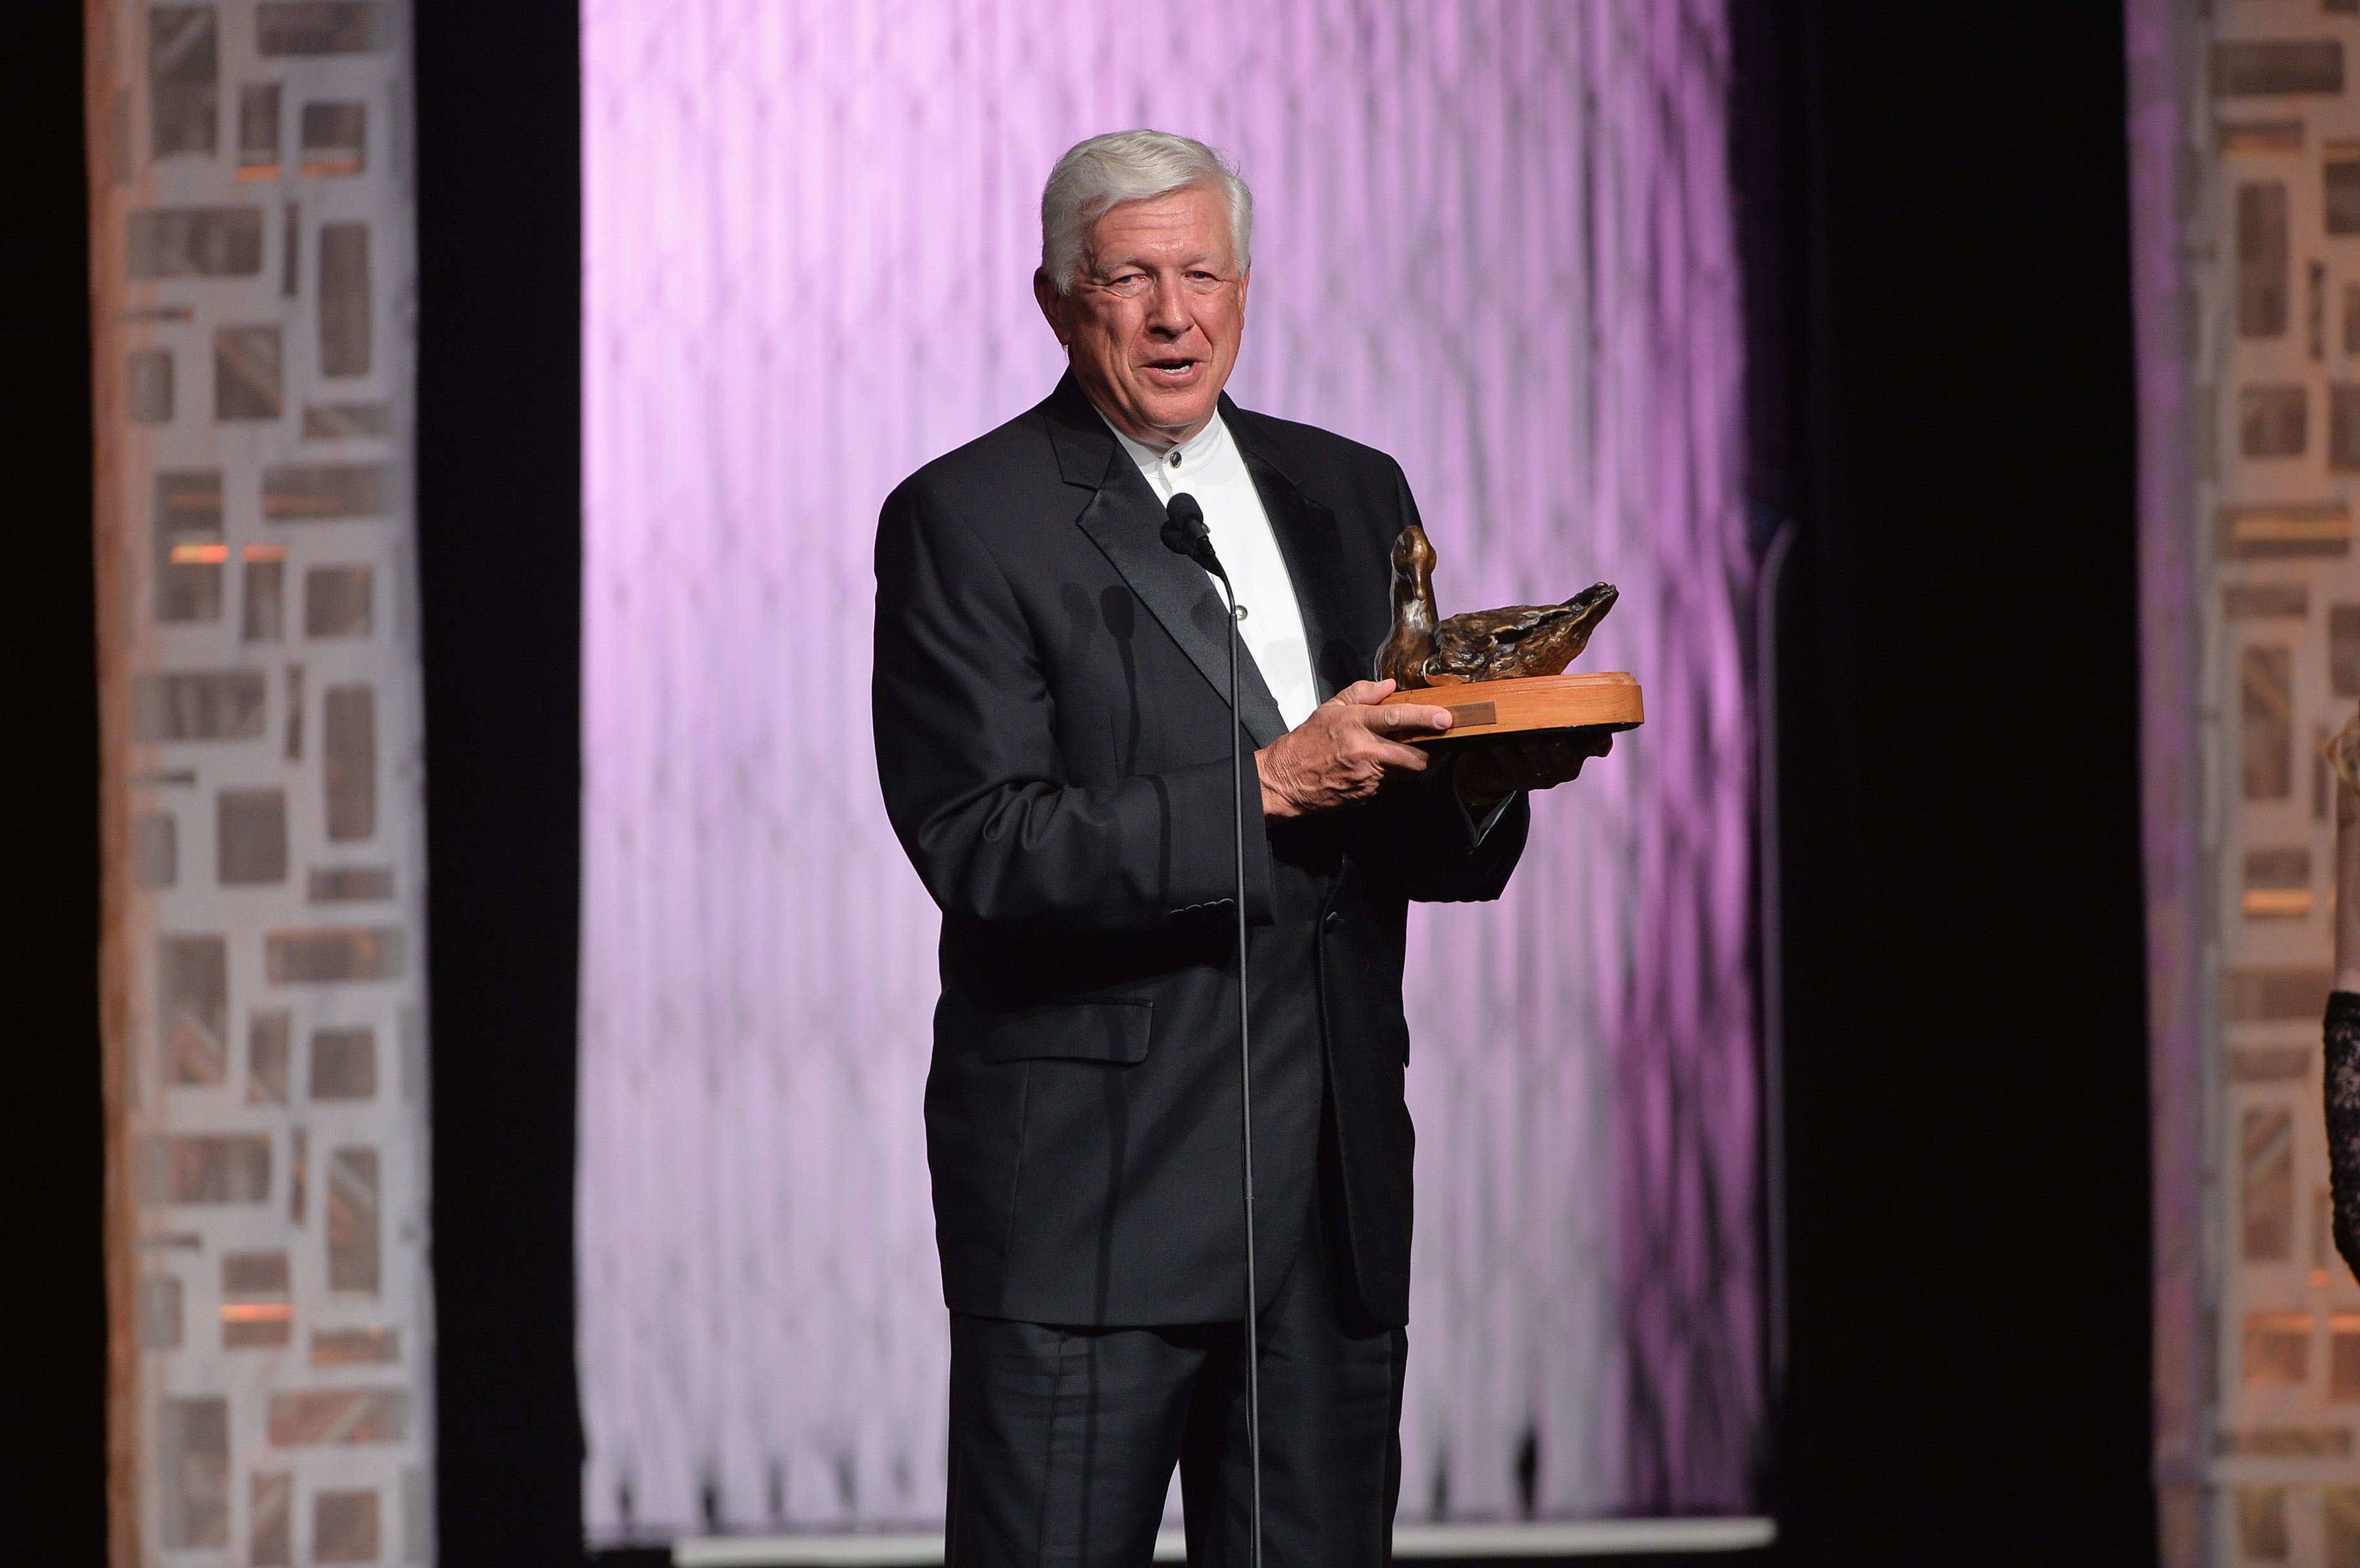 Philanthropist Foster Friess speaks on stage at the 22nd Annual Movieguide Awards Gala at the Universal Hilton Hotel on February 7, 2014 in Universal City, California. (Alberto E. Rodriguez/Getty Images)